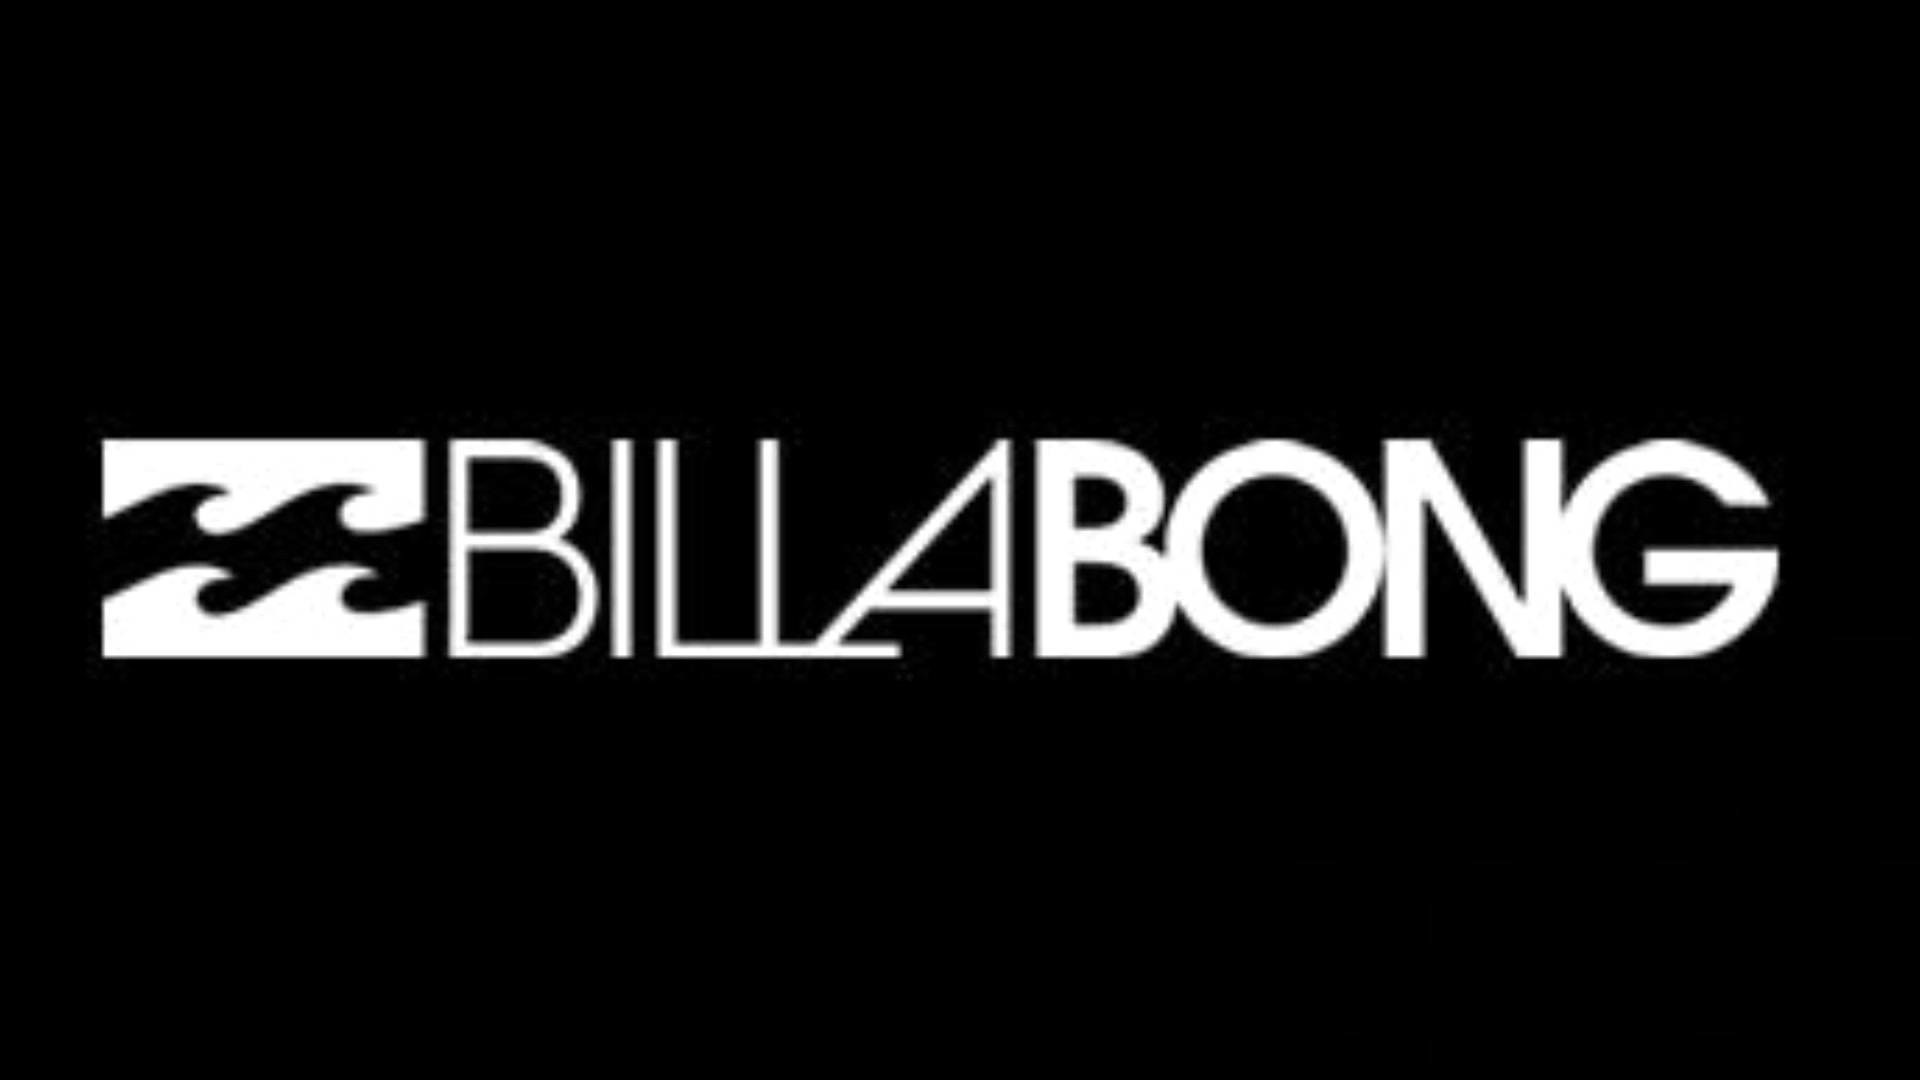 billabong wallpapers 51 images